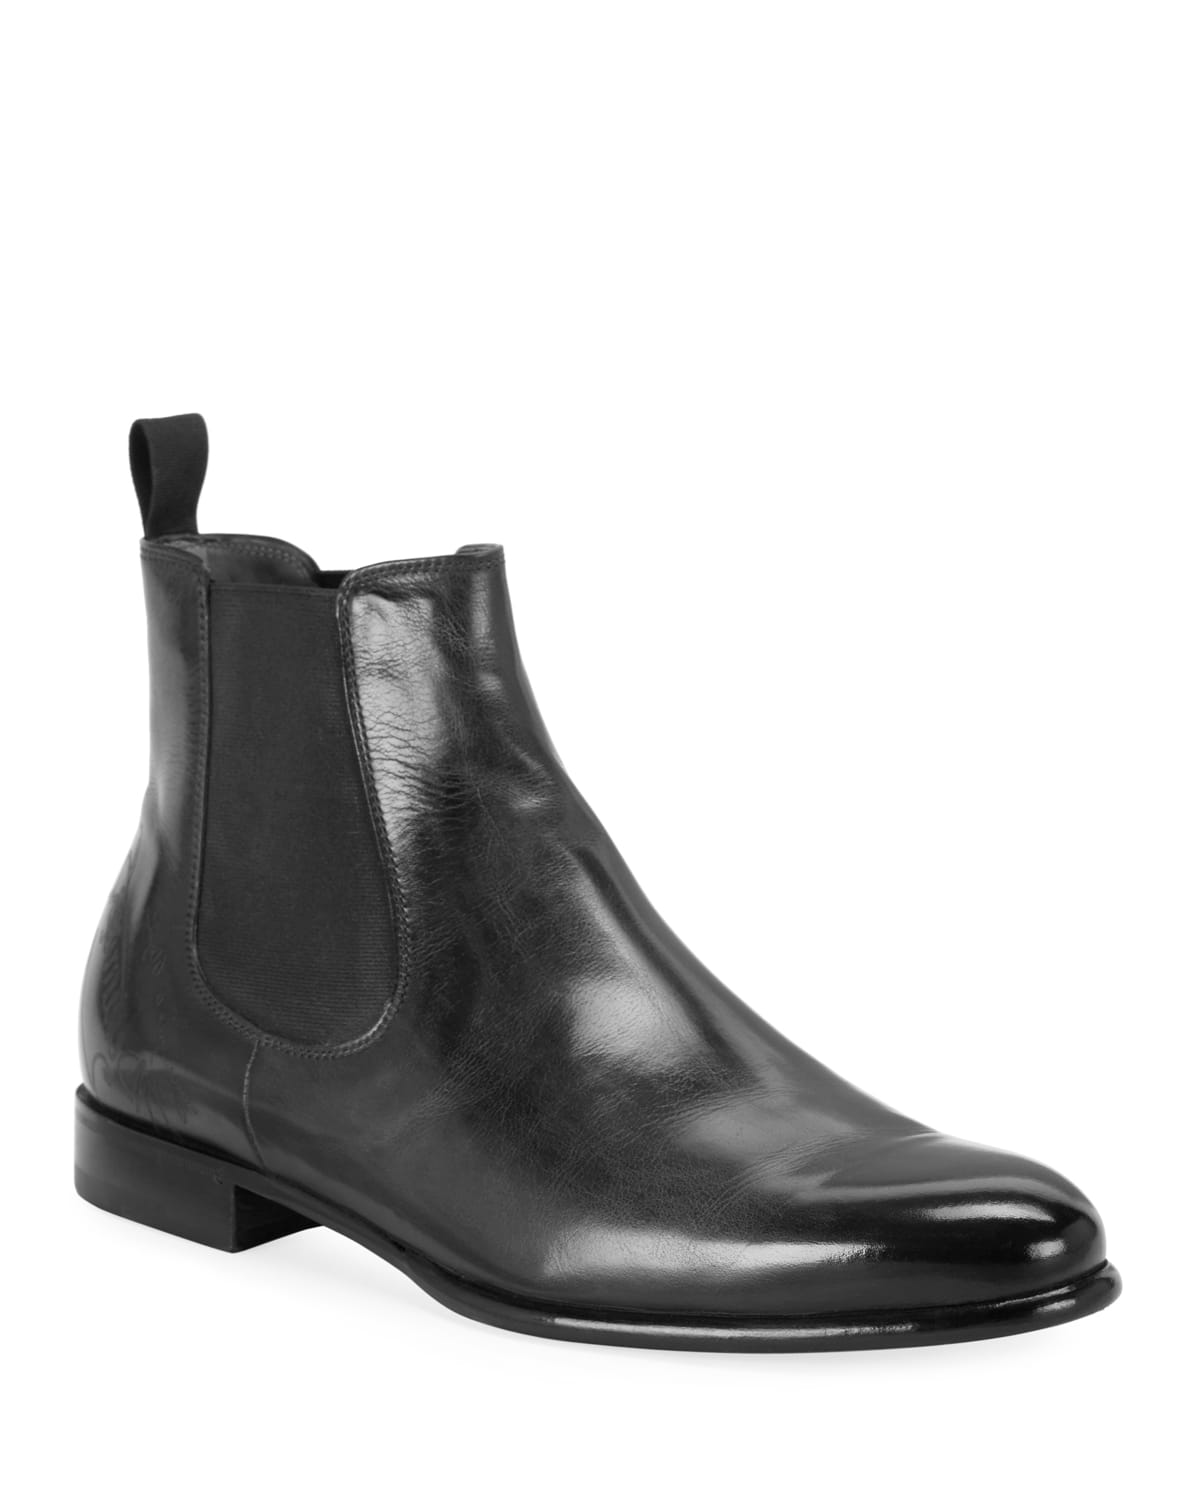 Men's Scritto Leather Chelsea Boots